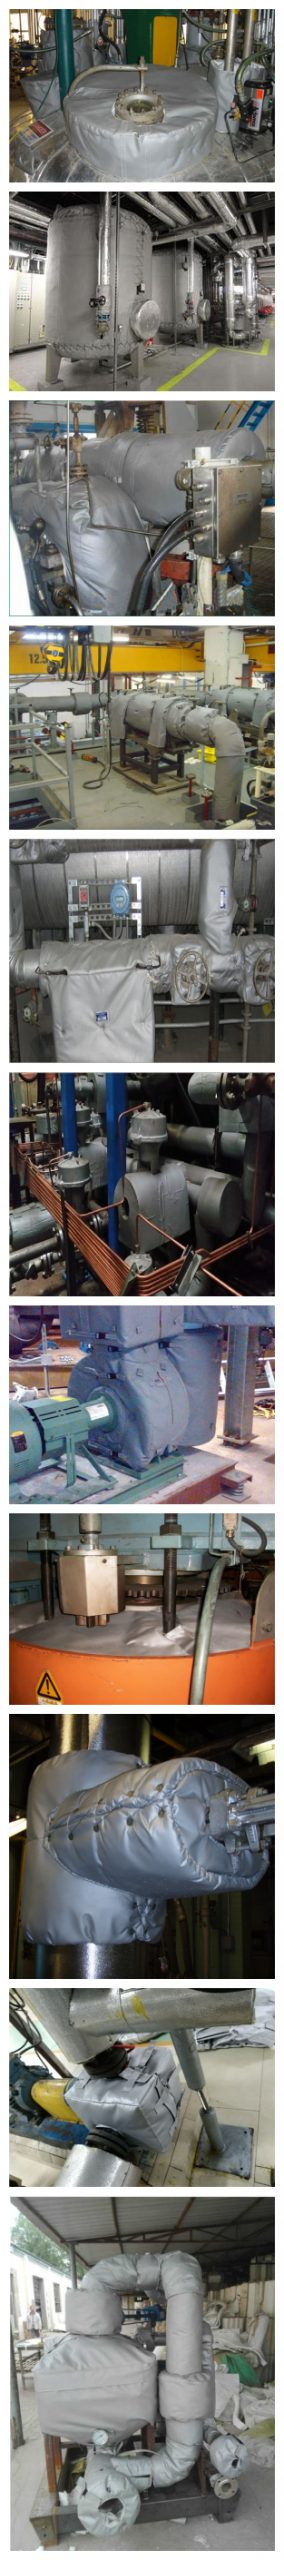 Mechanical equipment overall insulation system